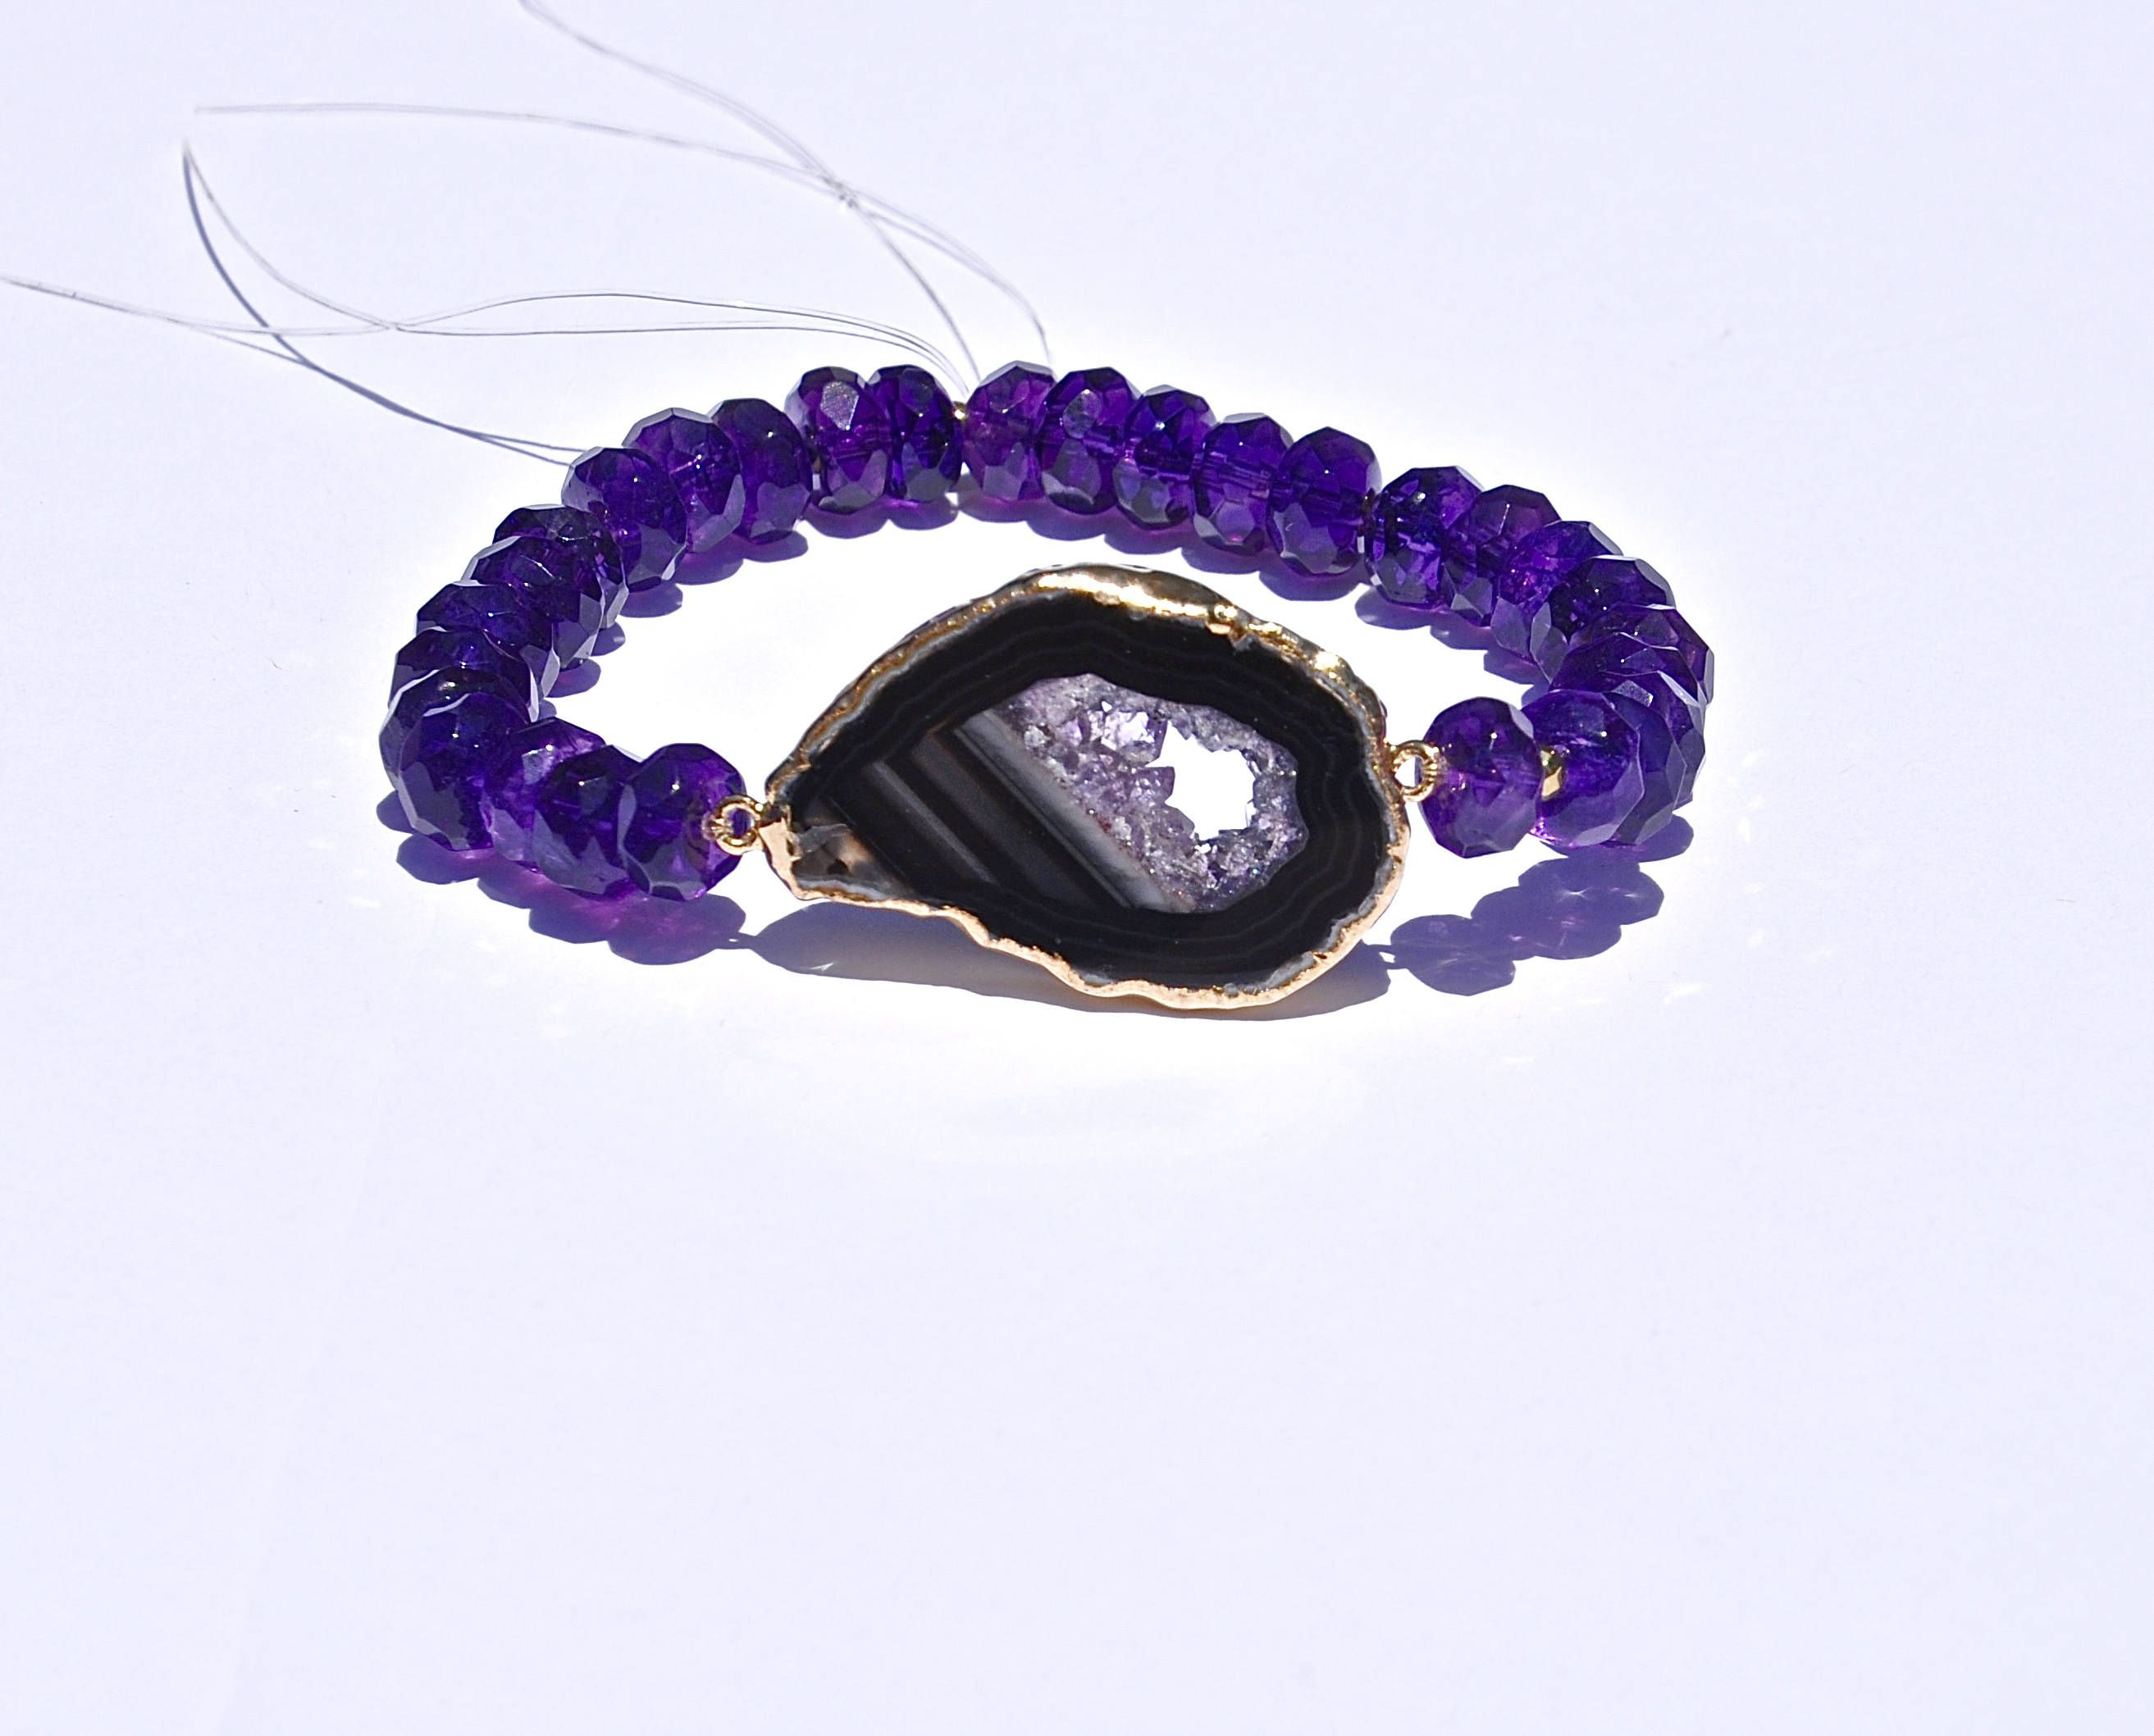 Small amethyst geode bracelets for women purple flower girl